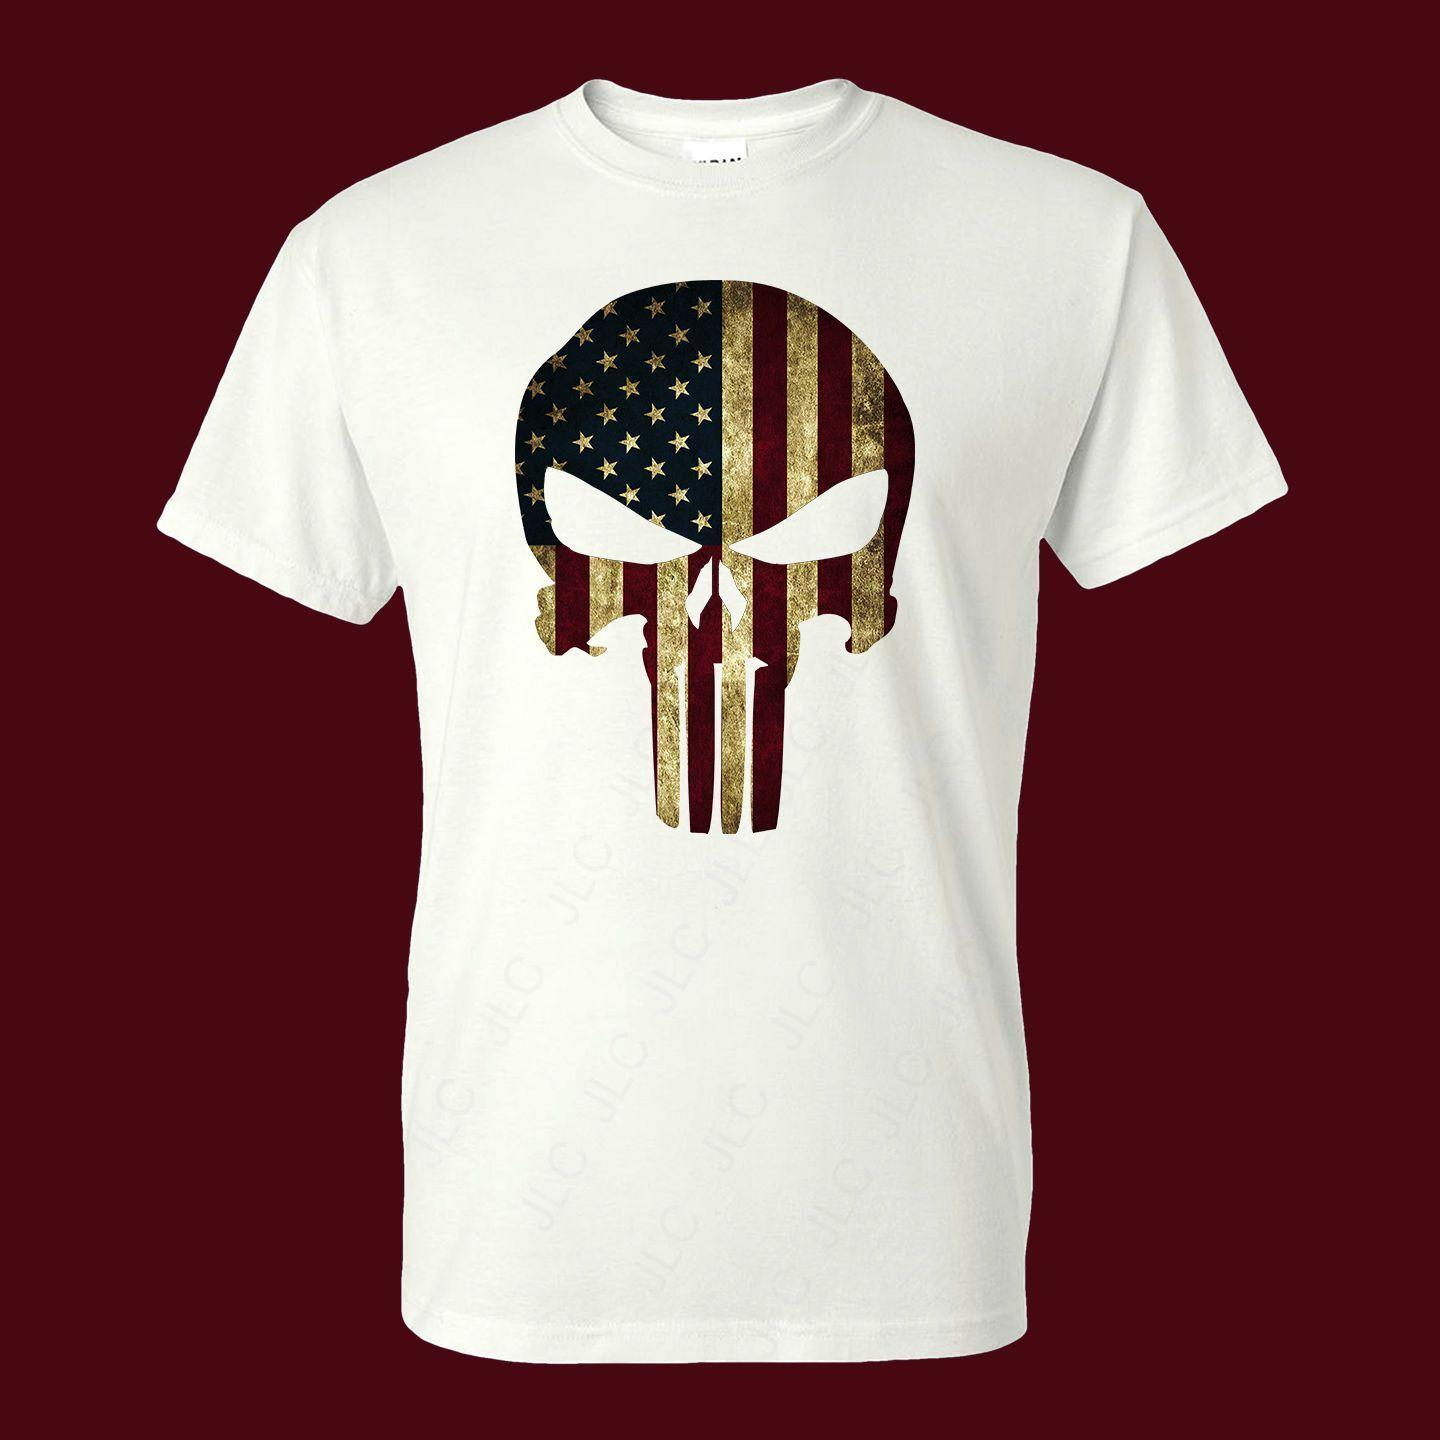 American Flag Punisher Skull Distressed Men/'s T-Shirt Ready to ship!